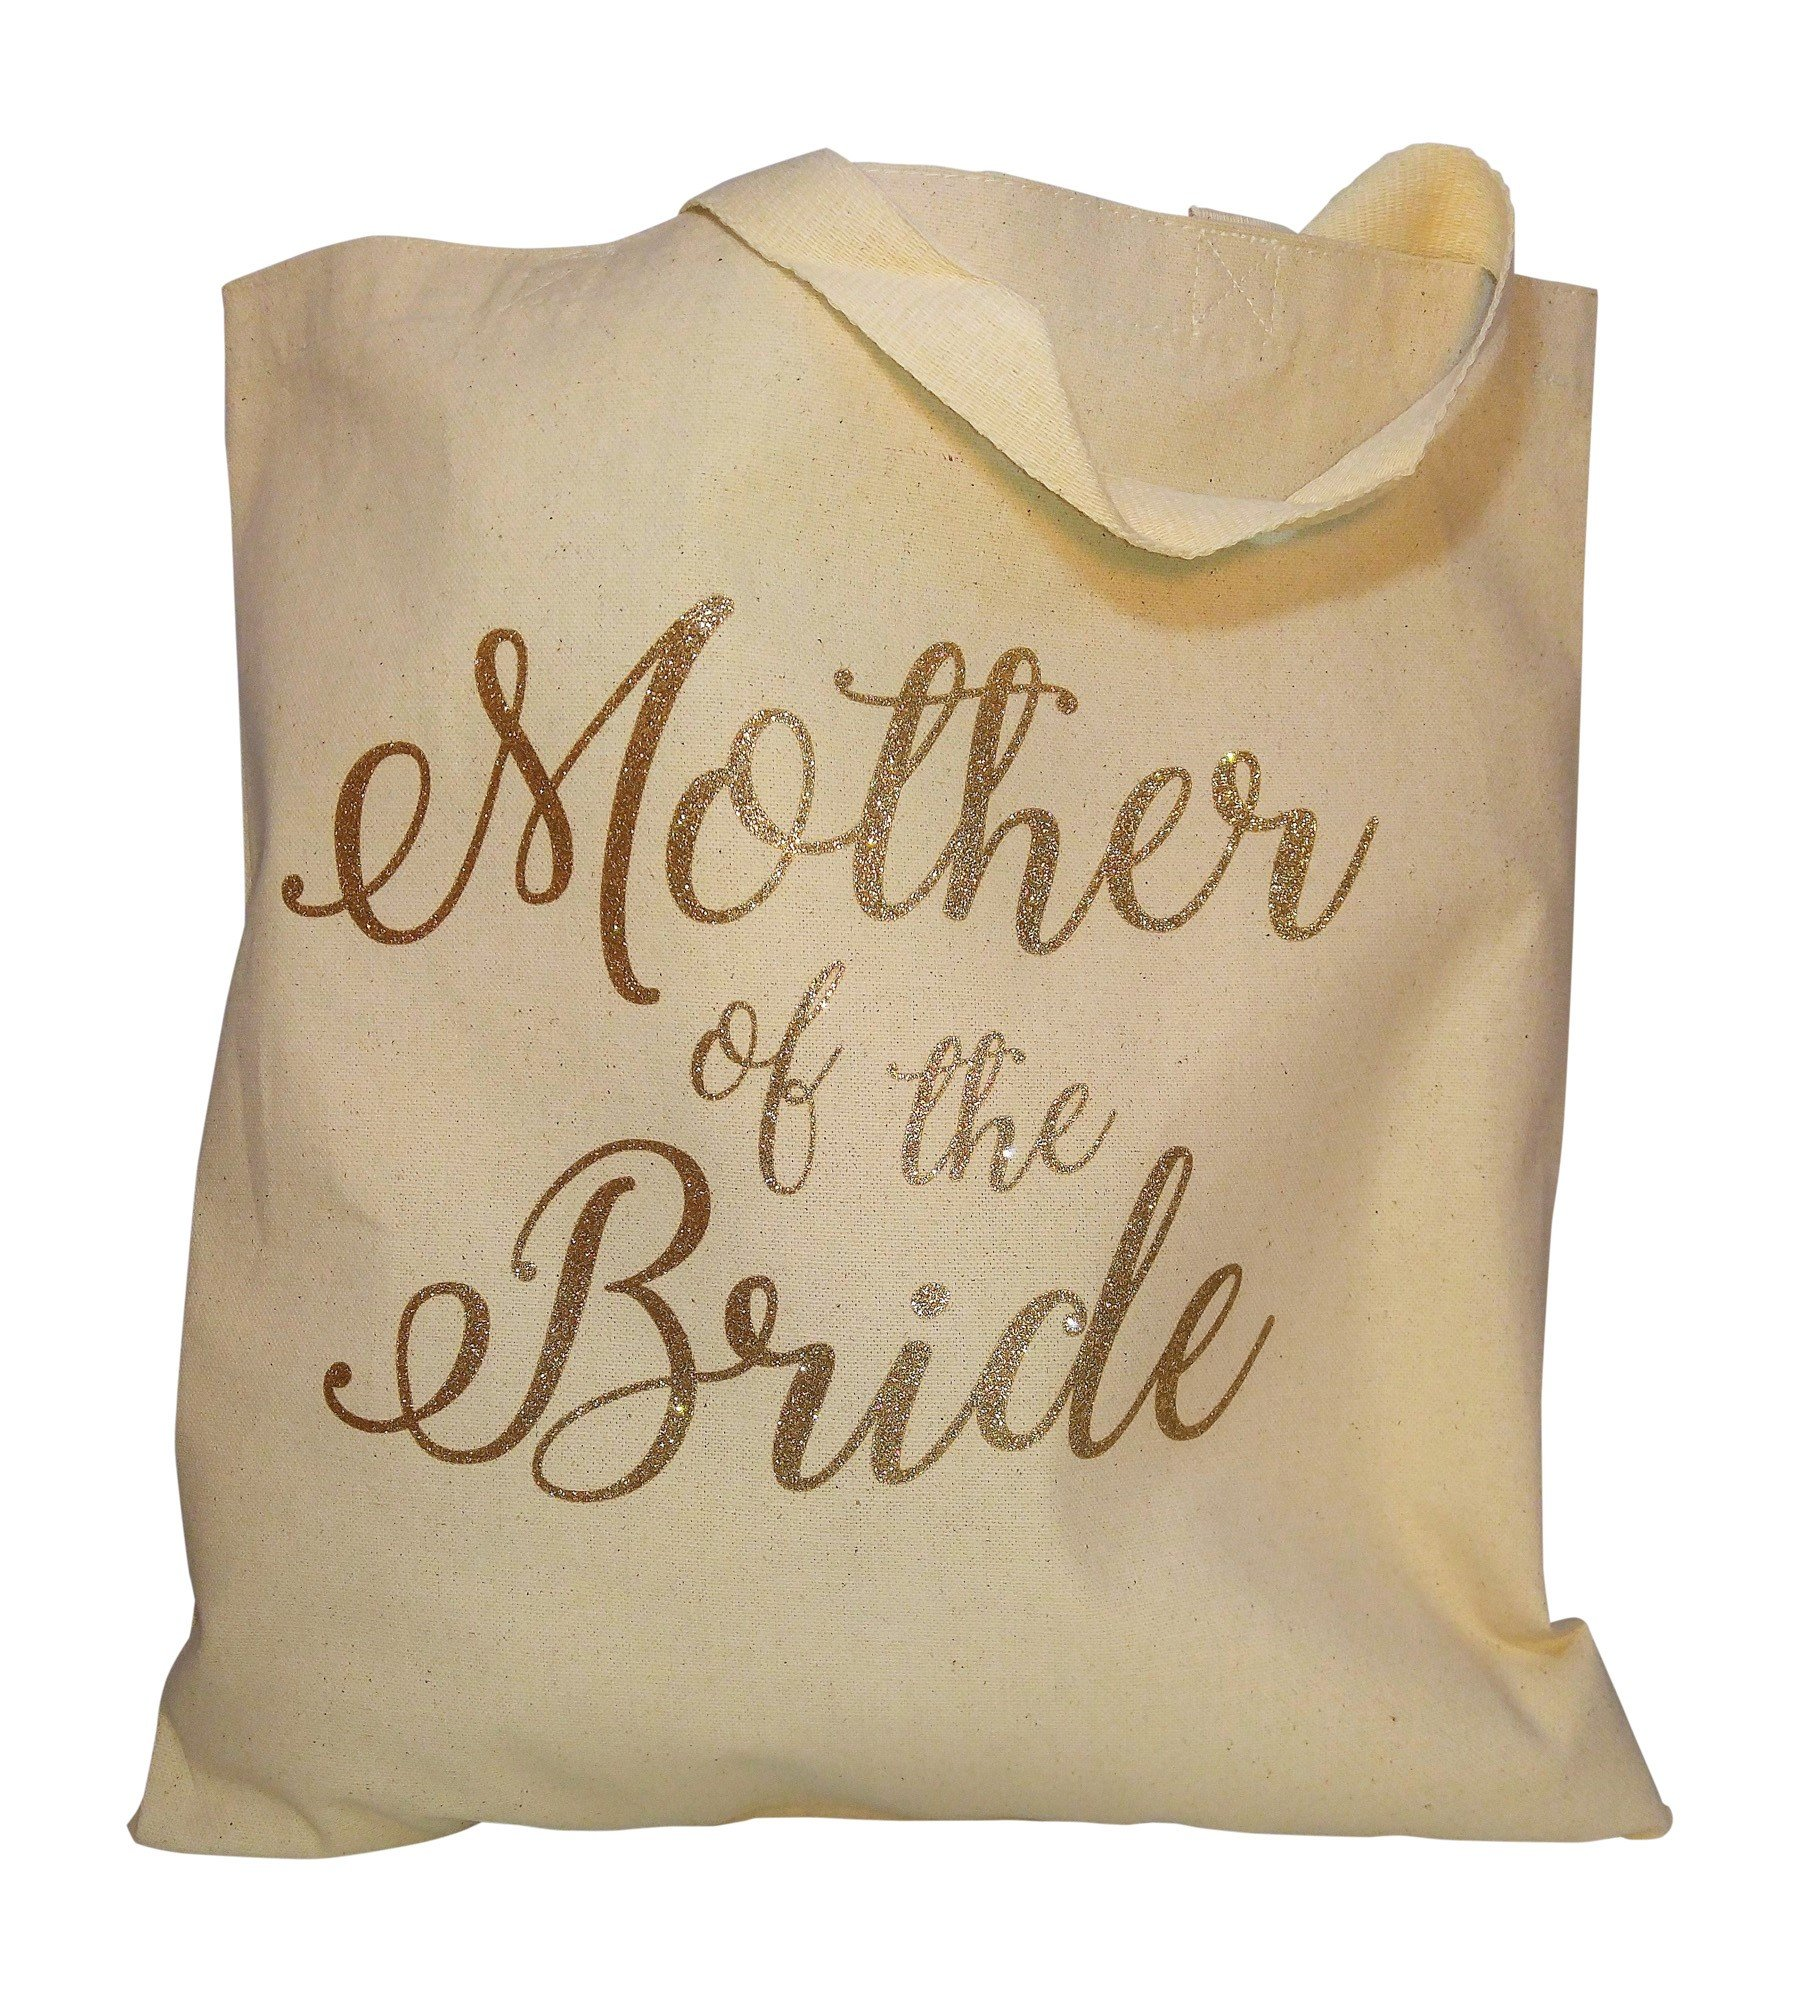 The Spoiled Office Wedding Party Bridal Tote Bag with Gold Lettering - Heavyweight, Large Canvas 15'' x 16'' (Mother of the Bride in Natural)